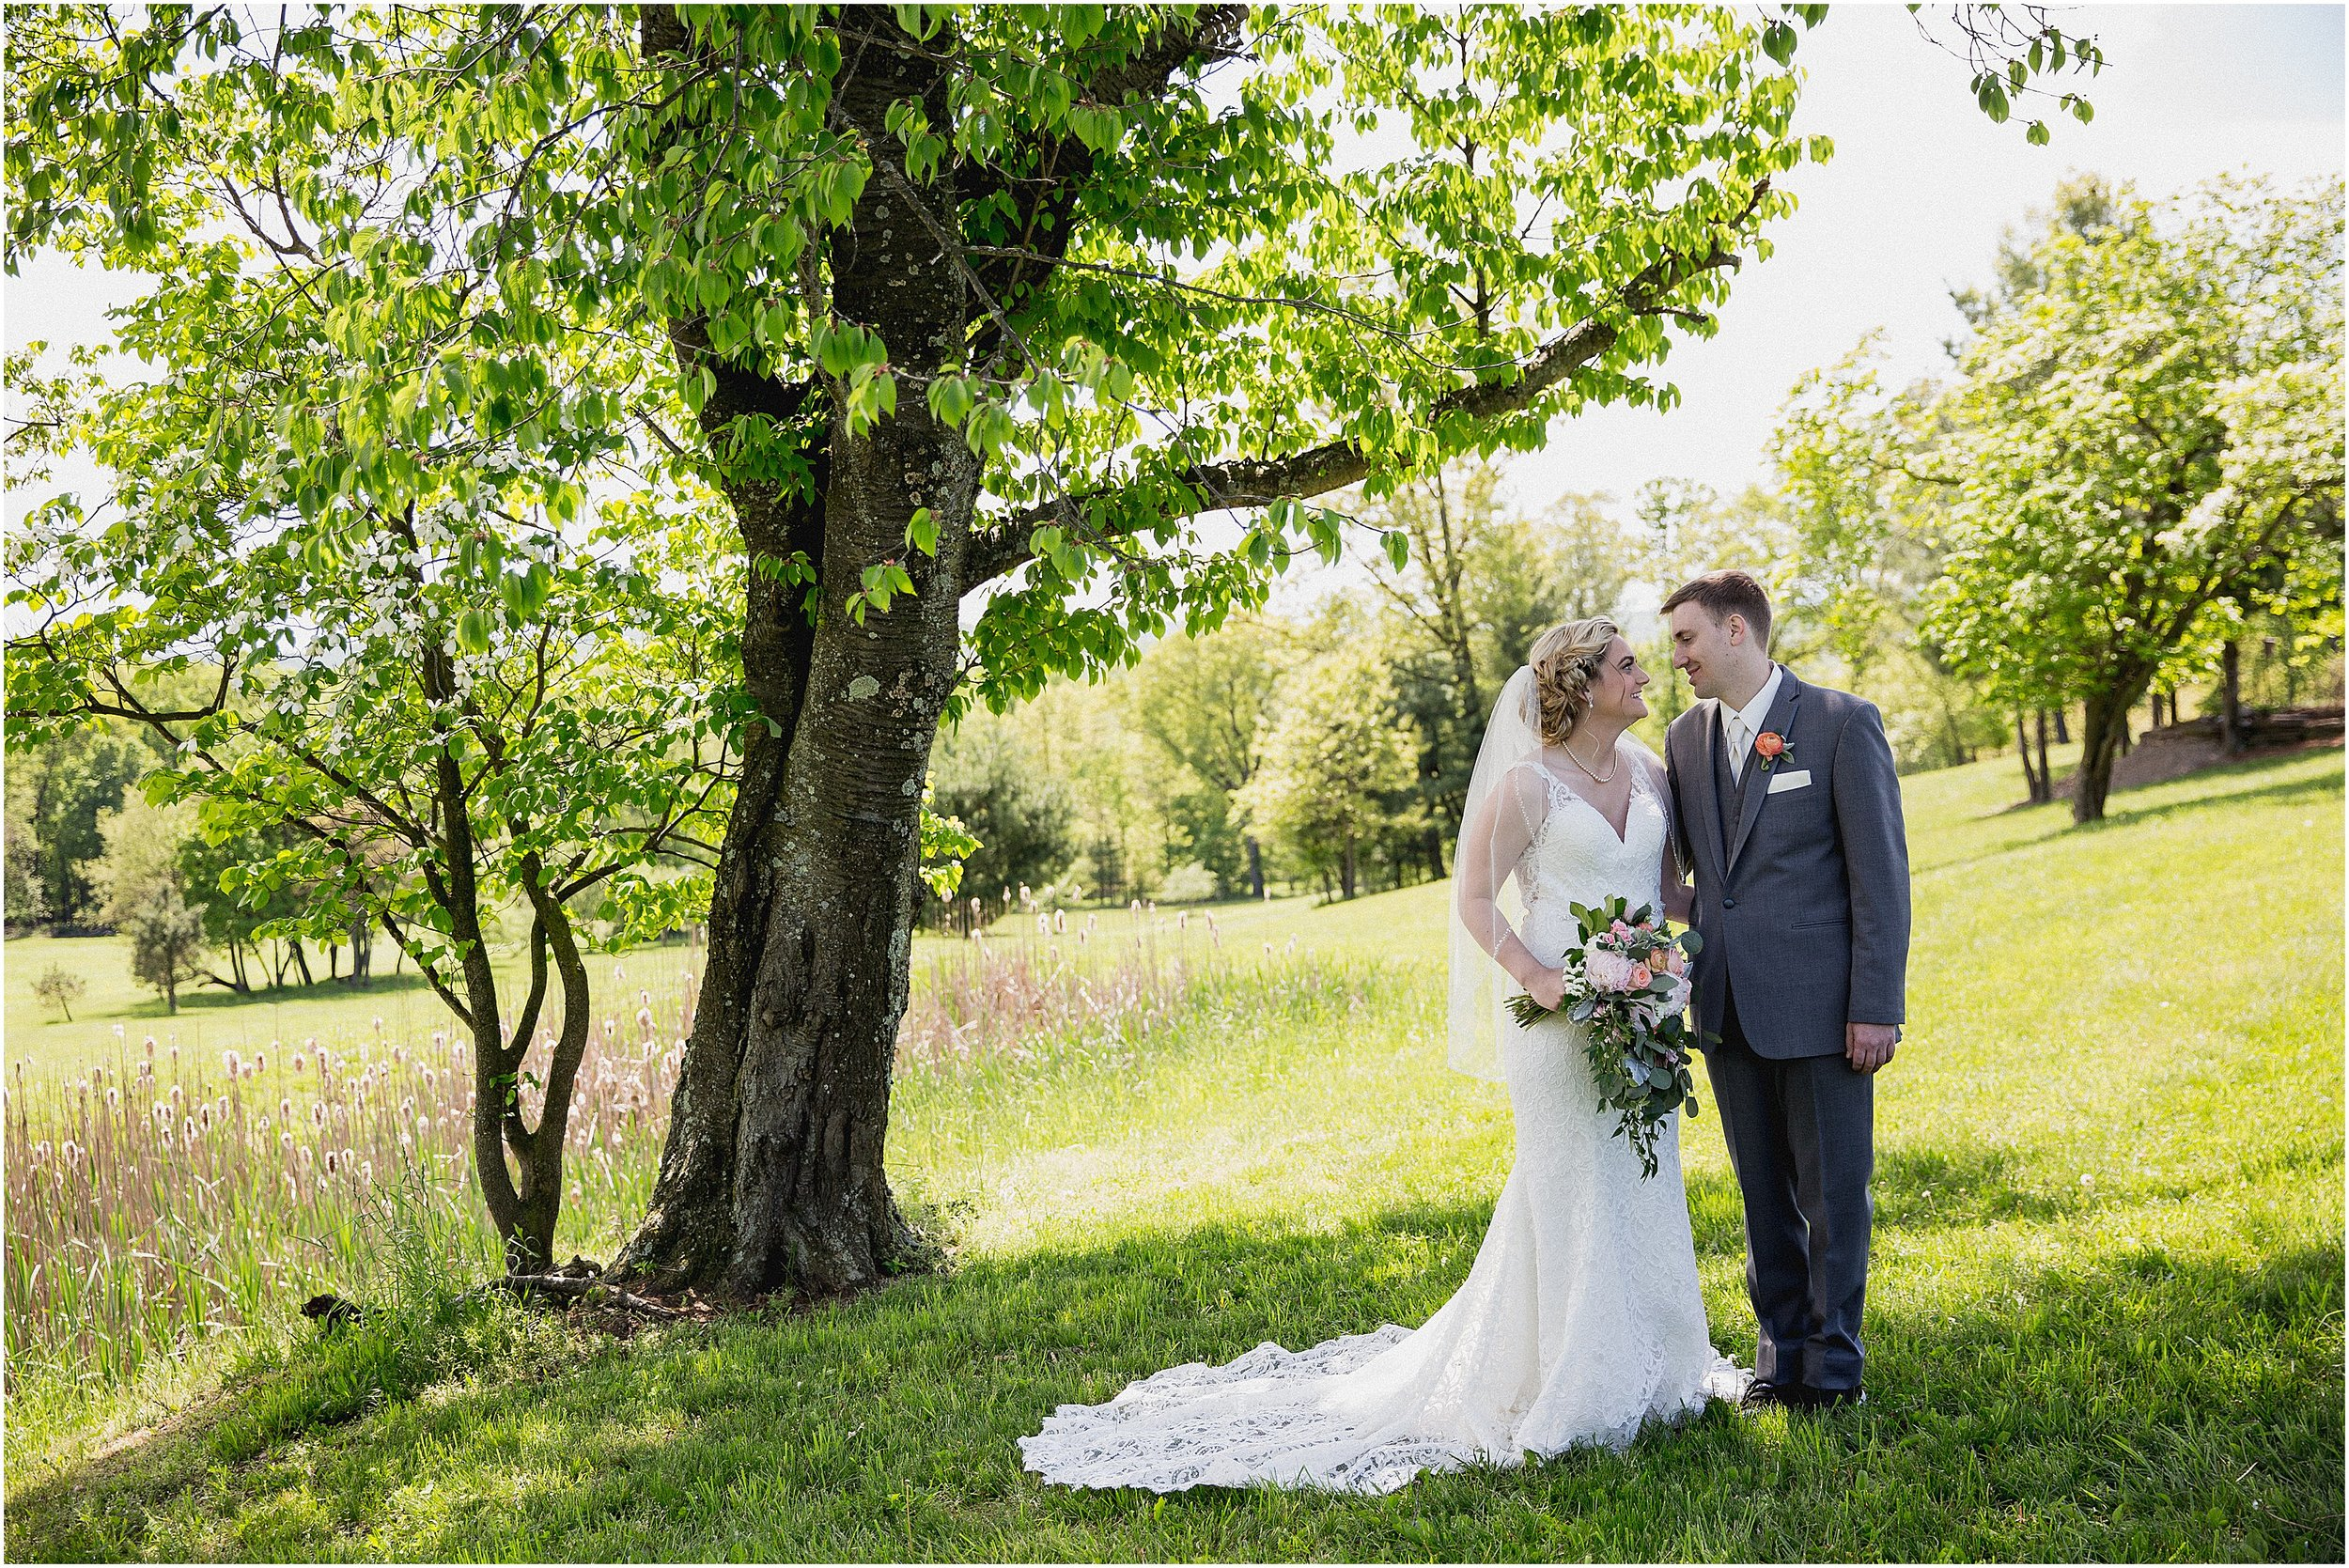 Whispering_Oaks_Wedding_Photographer_0454.jpg